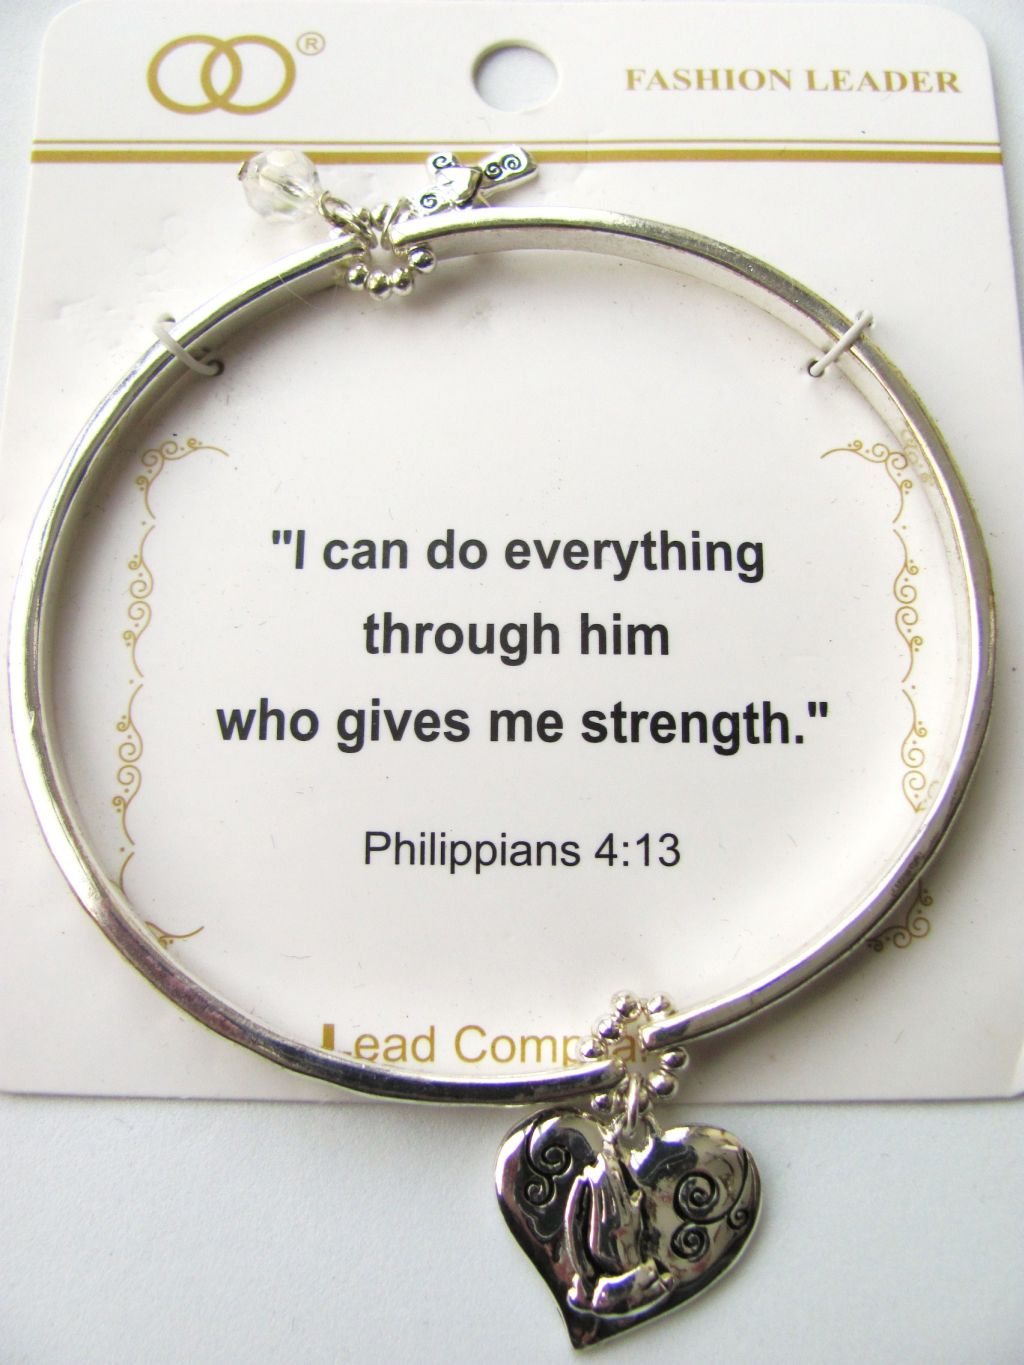 Inspirational Praying Hands Cross Charm Stretching Bangle Silver Bracelet